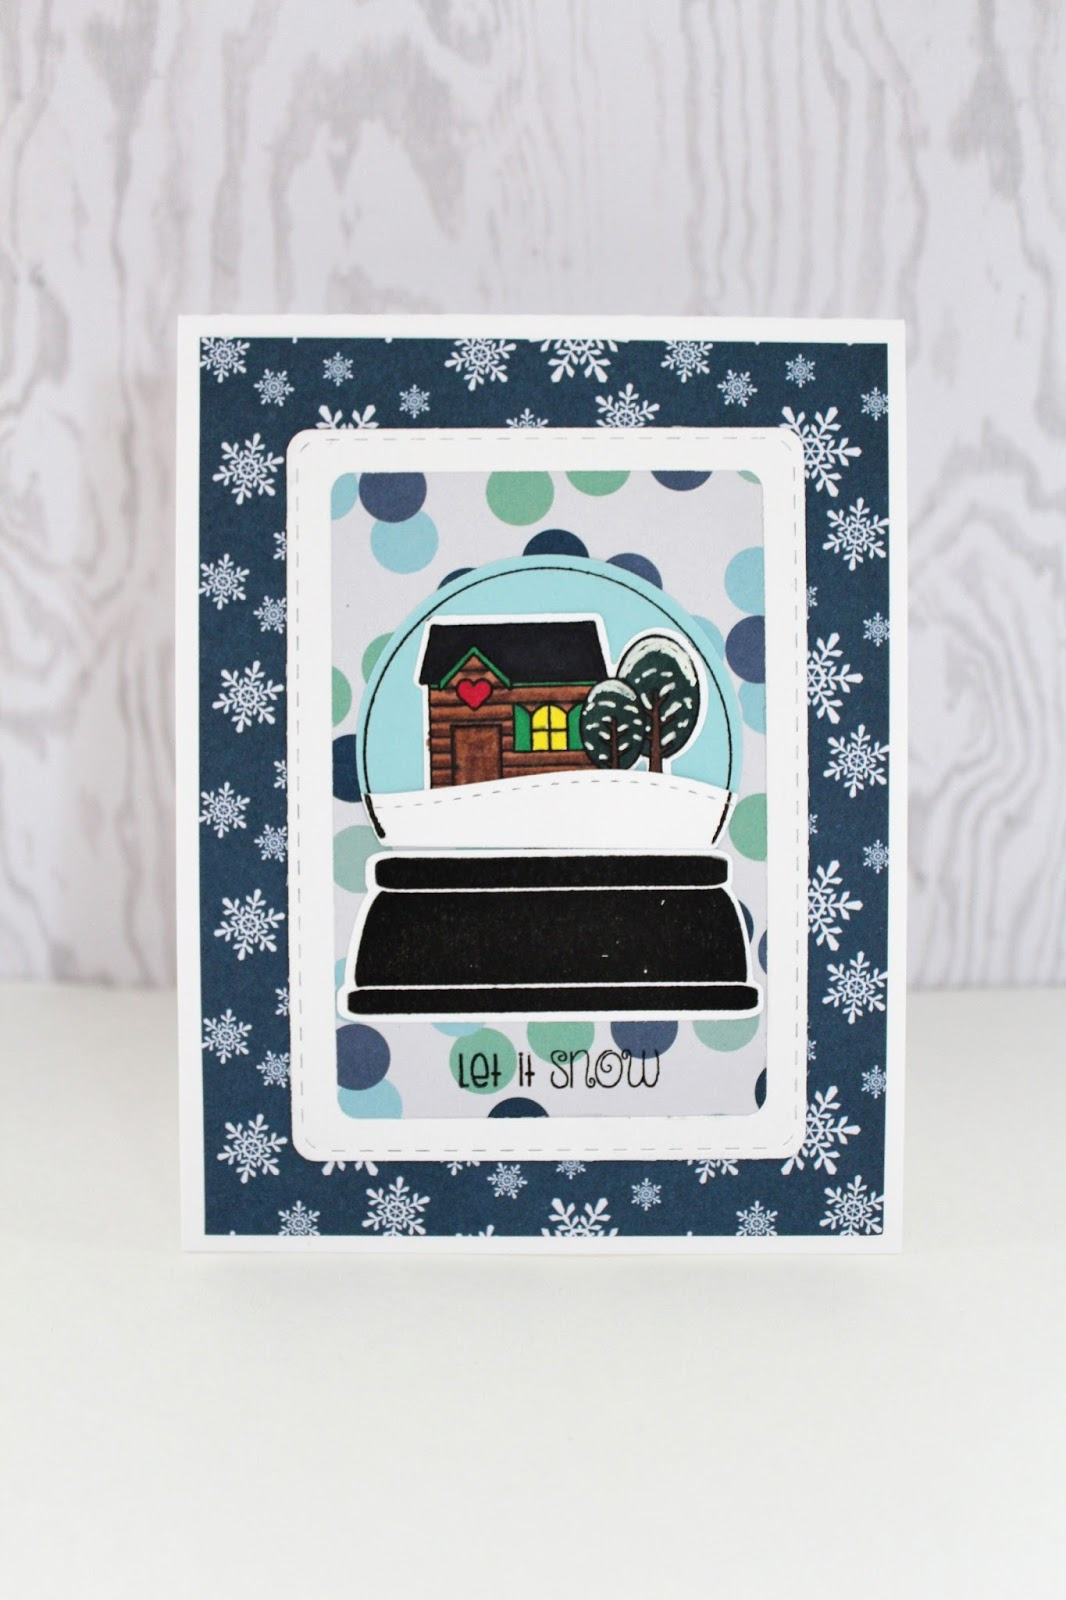 Let It Snow Snow Globe | Pink and Main Blog